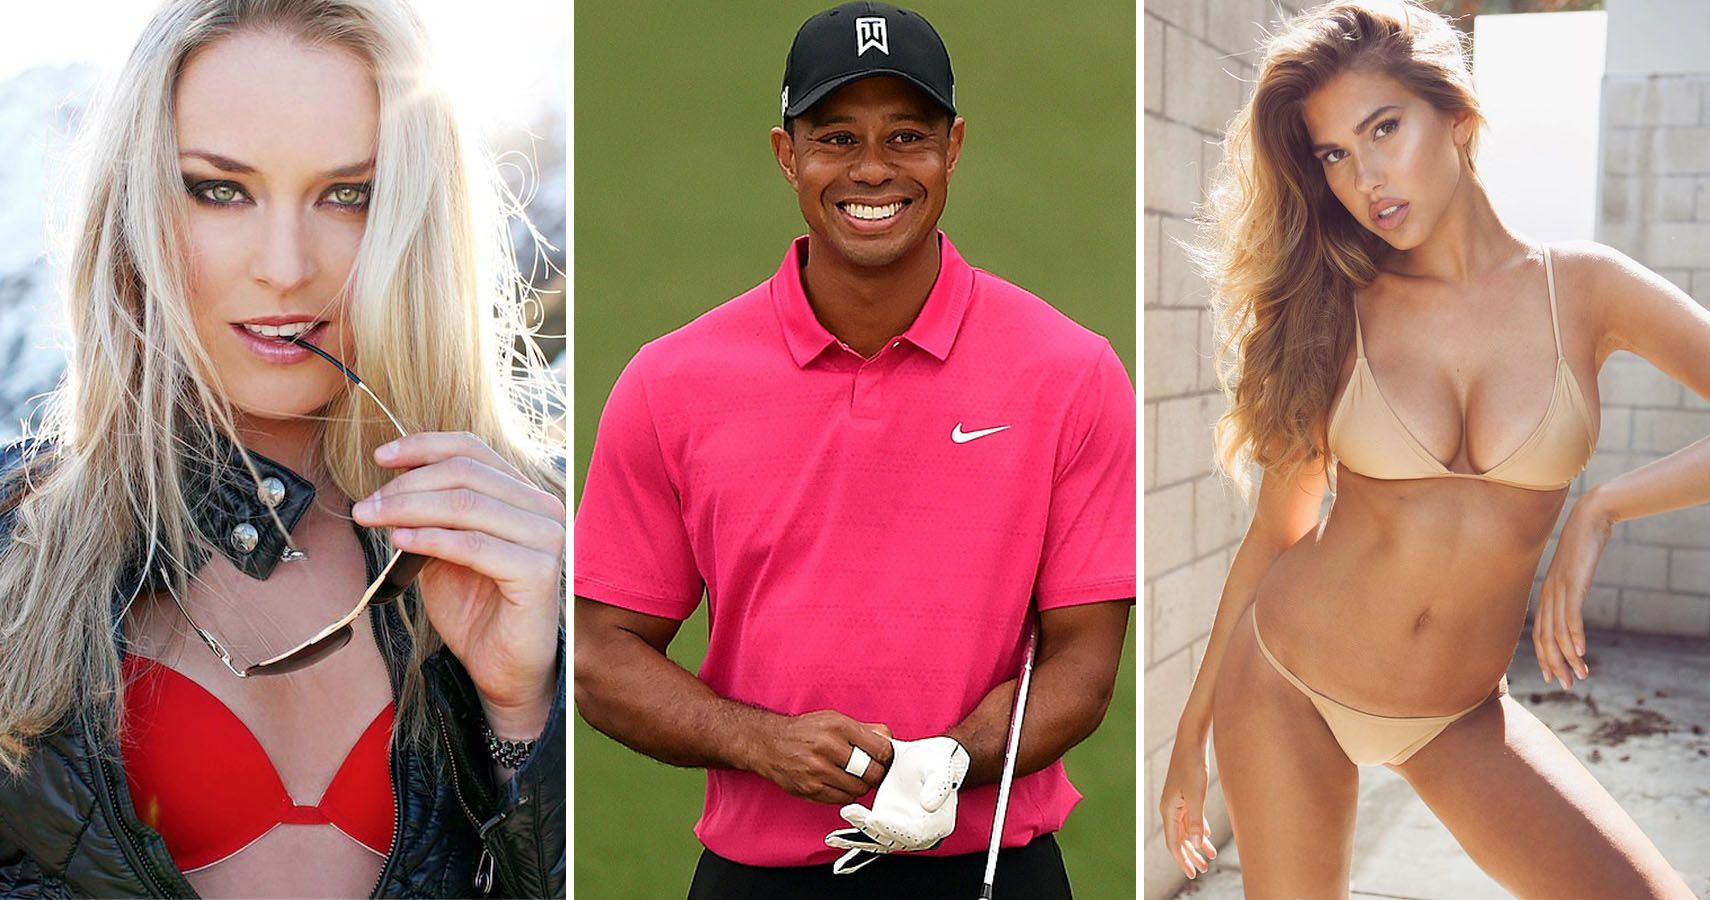 Who is tiger woods hookup now 2019